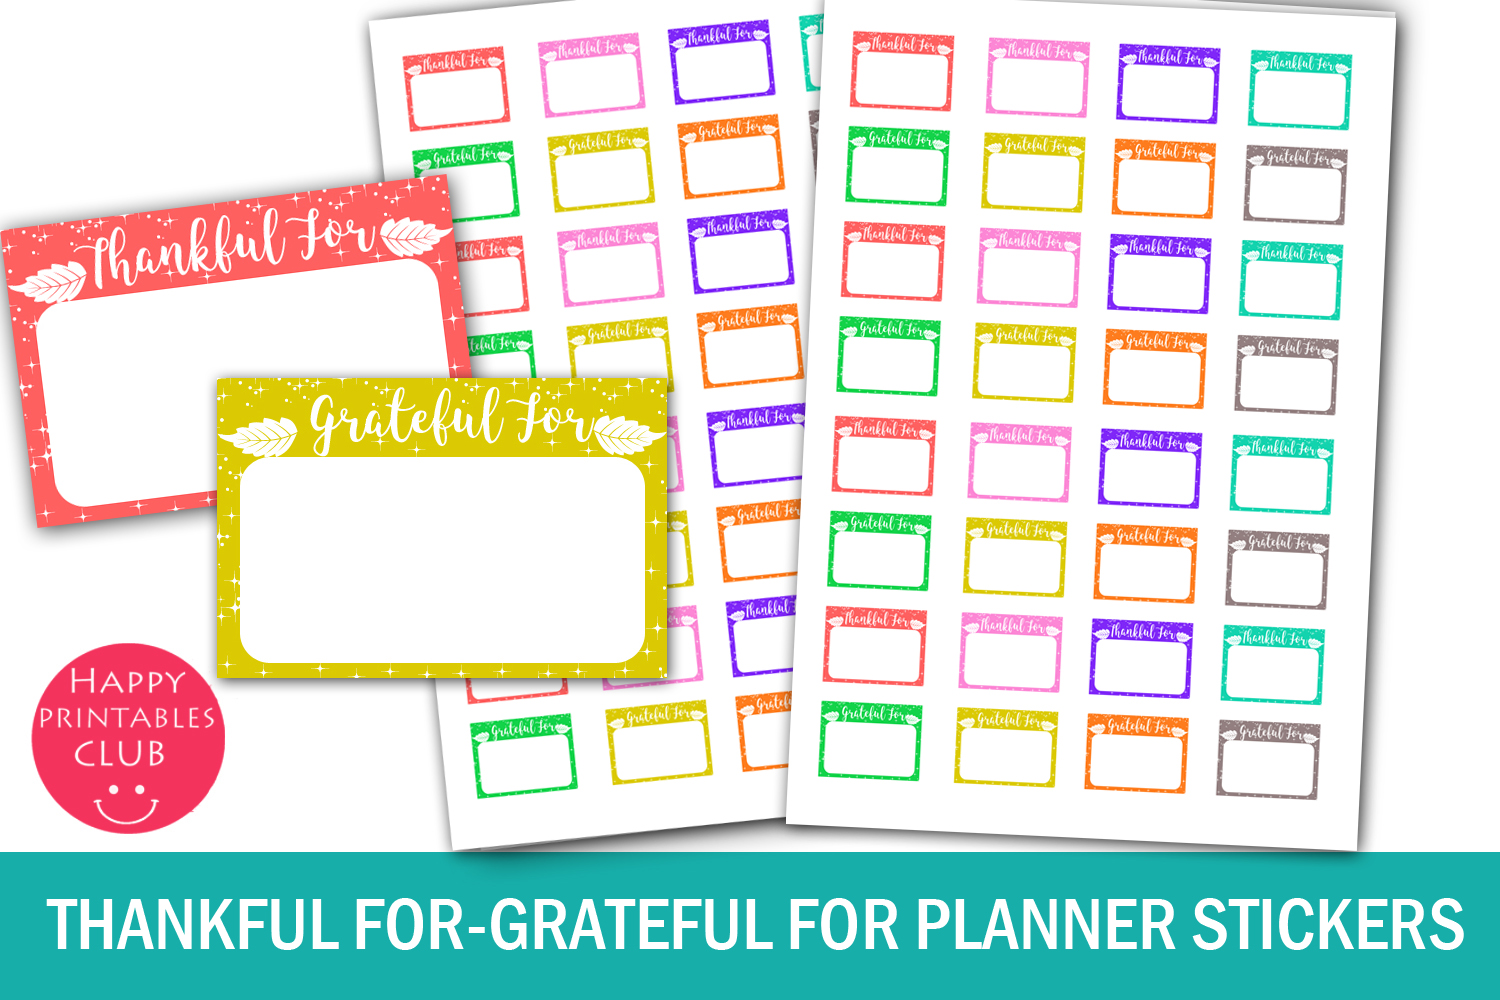 Thankful For Planner Stickers- Grateful For Planner Stickers example image 1